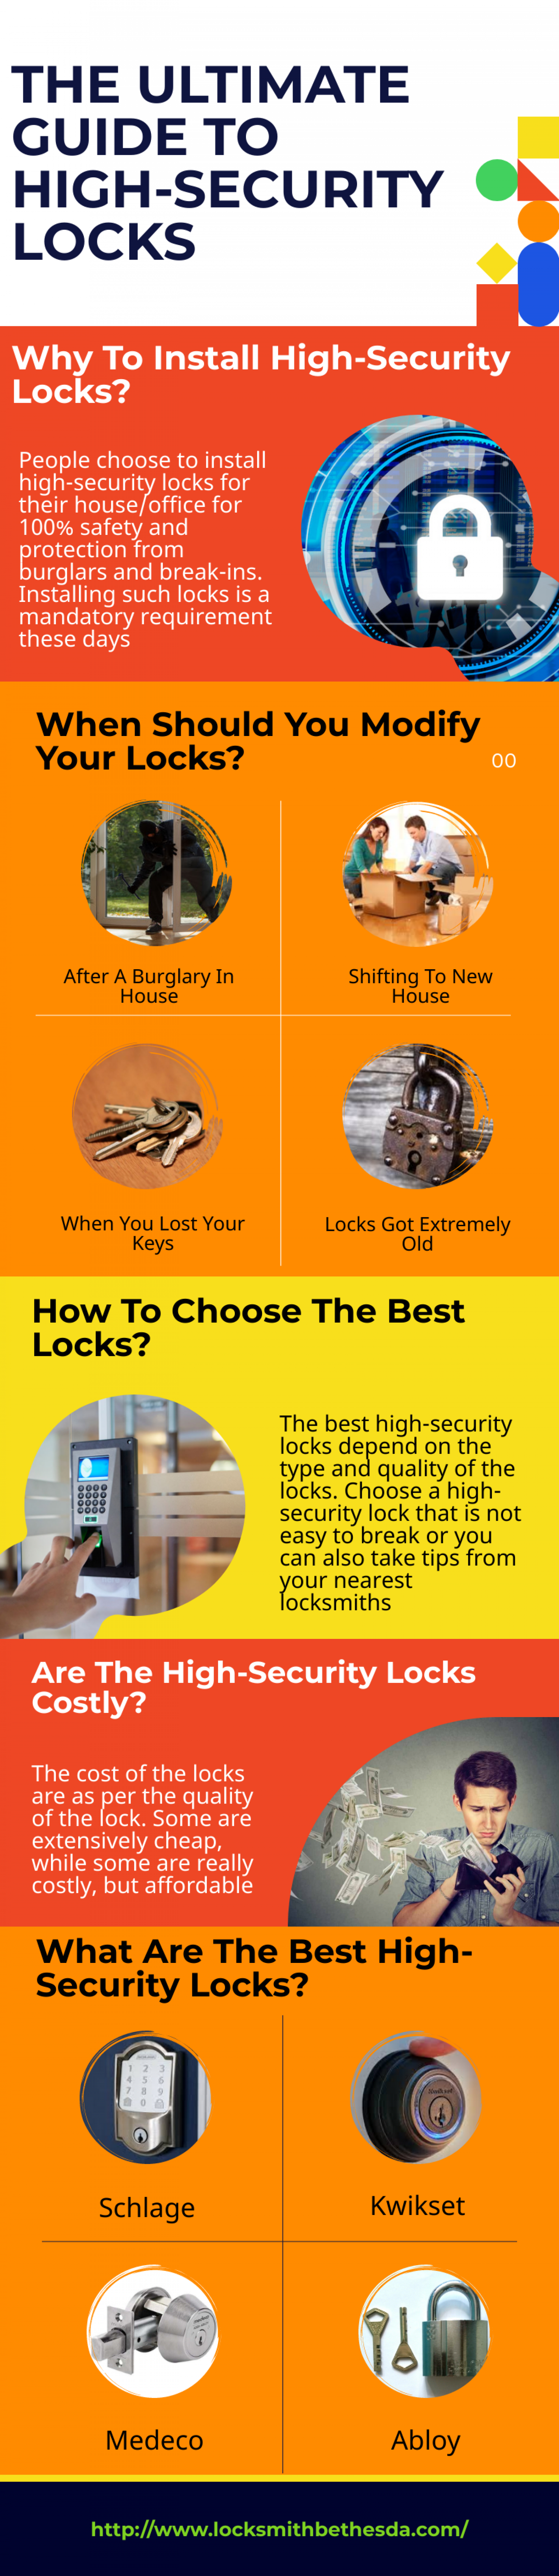 THE ULTIMATE GUIDE TO HIGH-SECURITY LOCKS Infographic